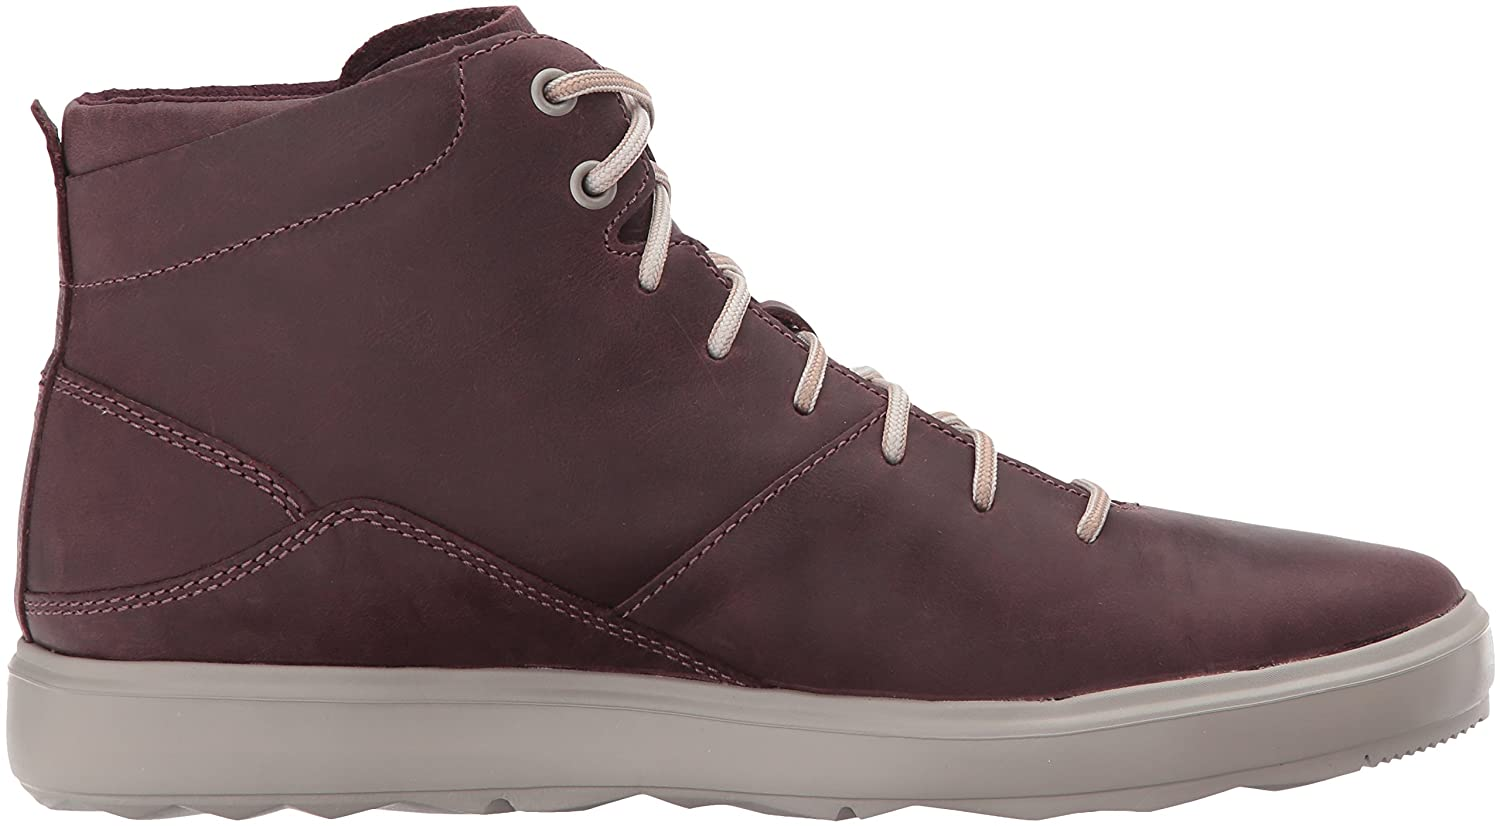 Merrell Women's Fashion Around Town Mid Lace Fashion Women's Sneaker B01MZ0H0SG 5.5 B(M) US|Huckleberry 4d1c3b